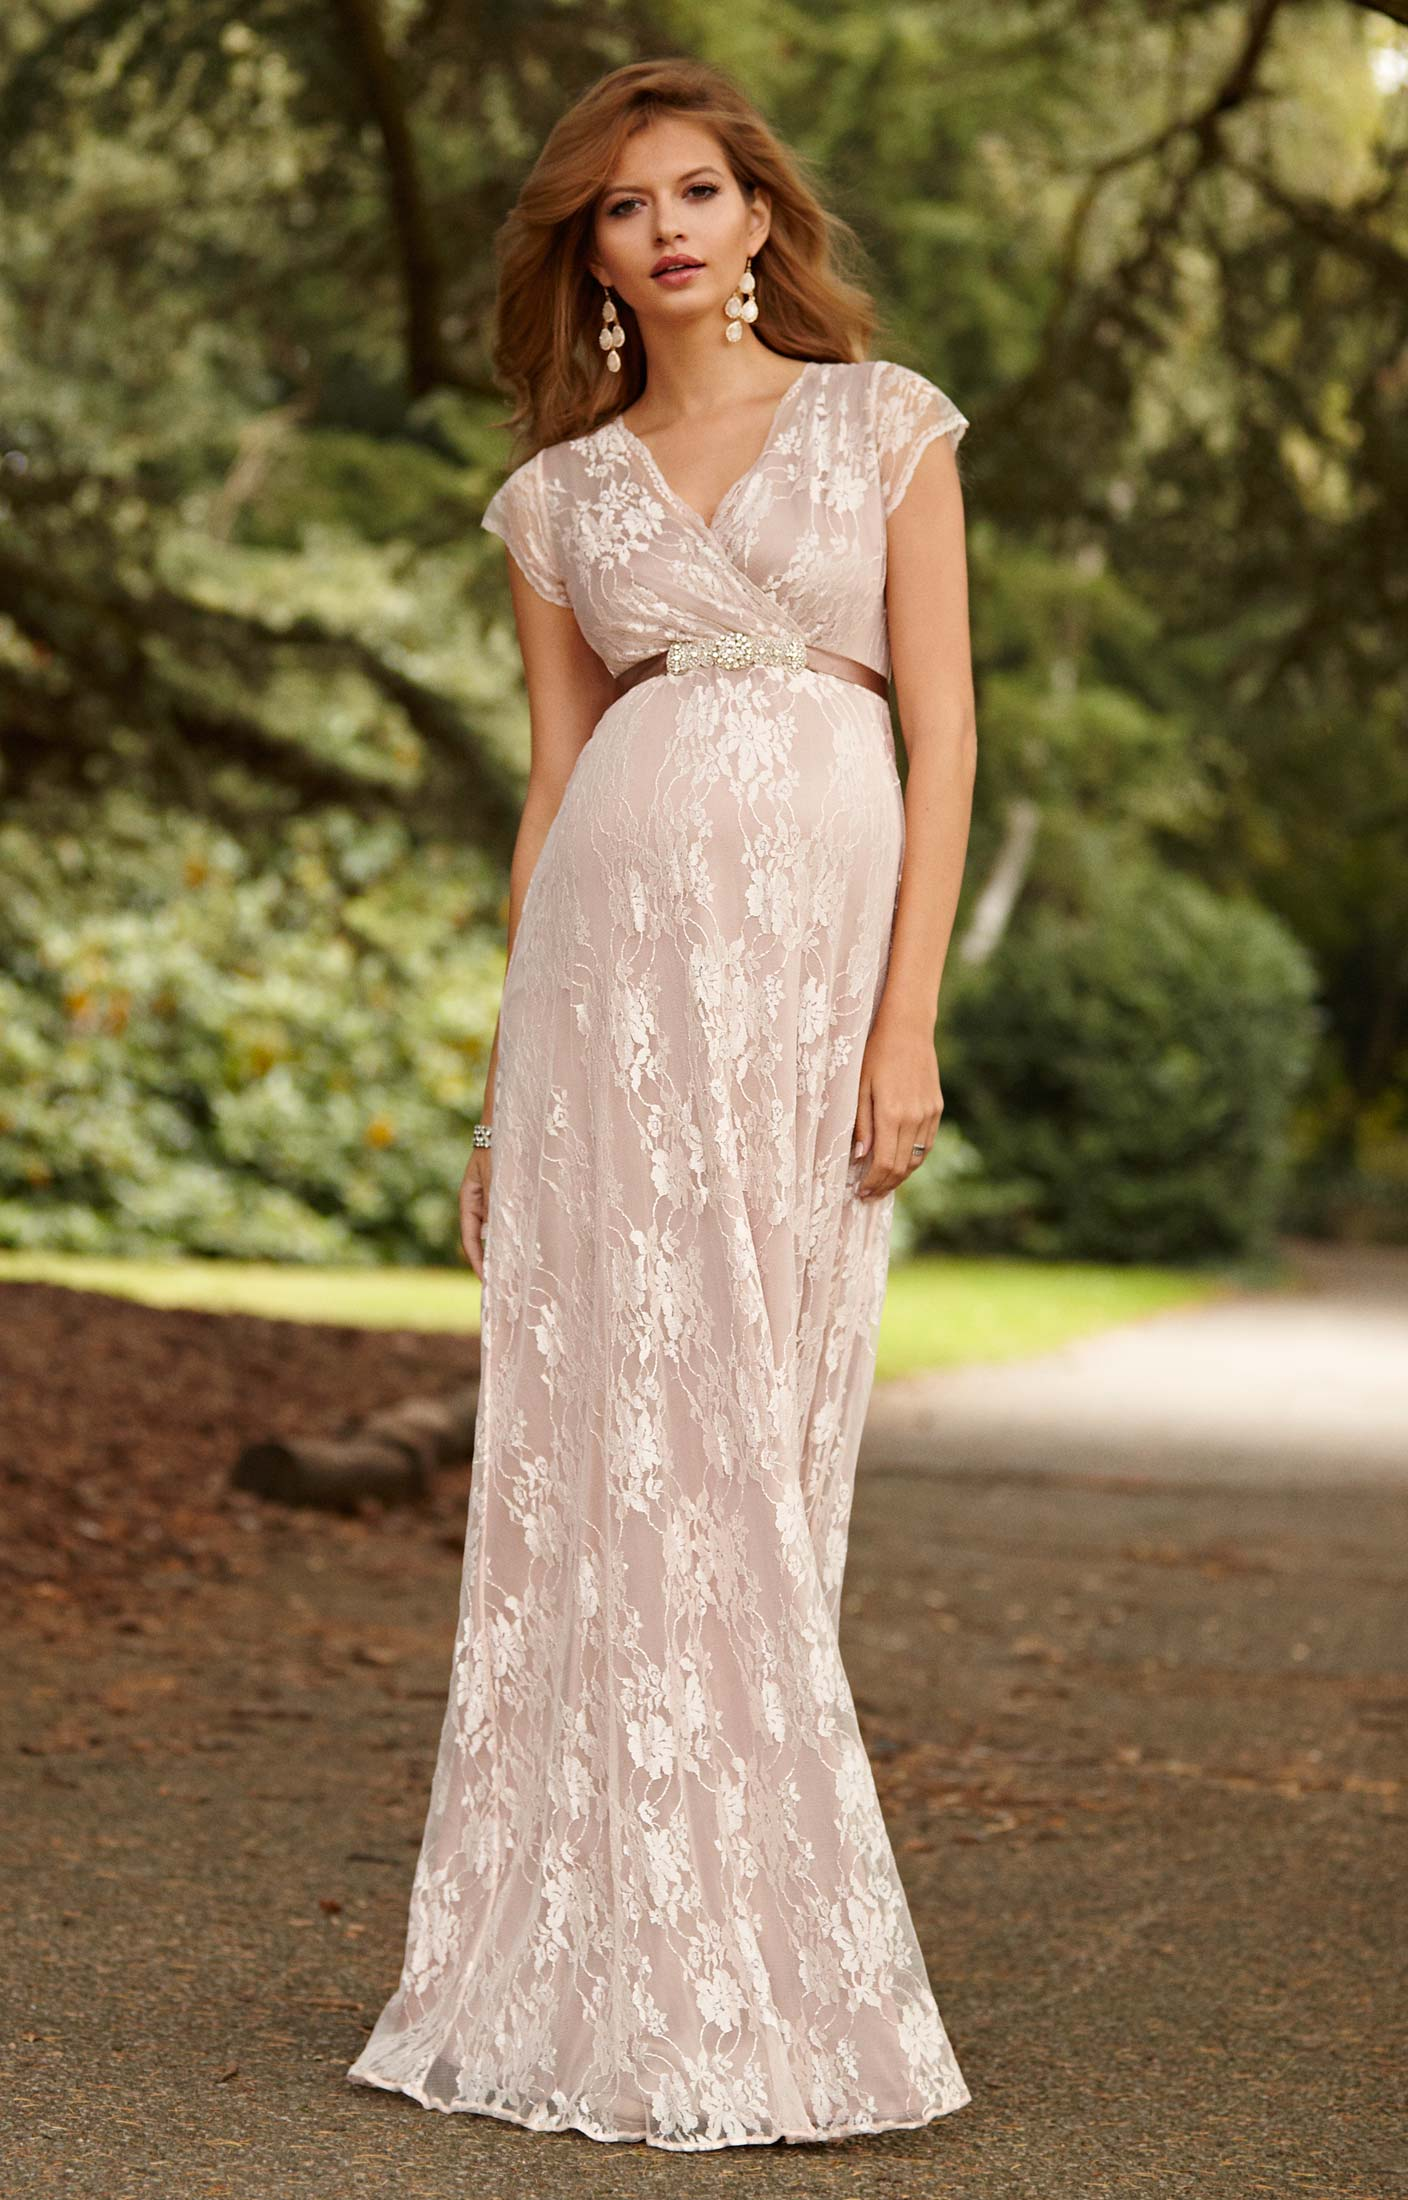 2434f06554d93 Eden Maternity Gown Long Blush - Maternity Wedding Dresses, Evening Wear  and Party Clothes by Tiffany Rose.